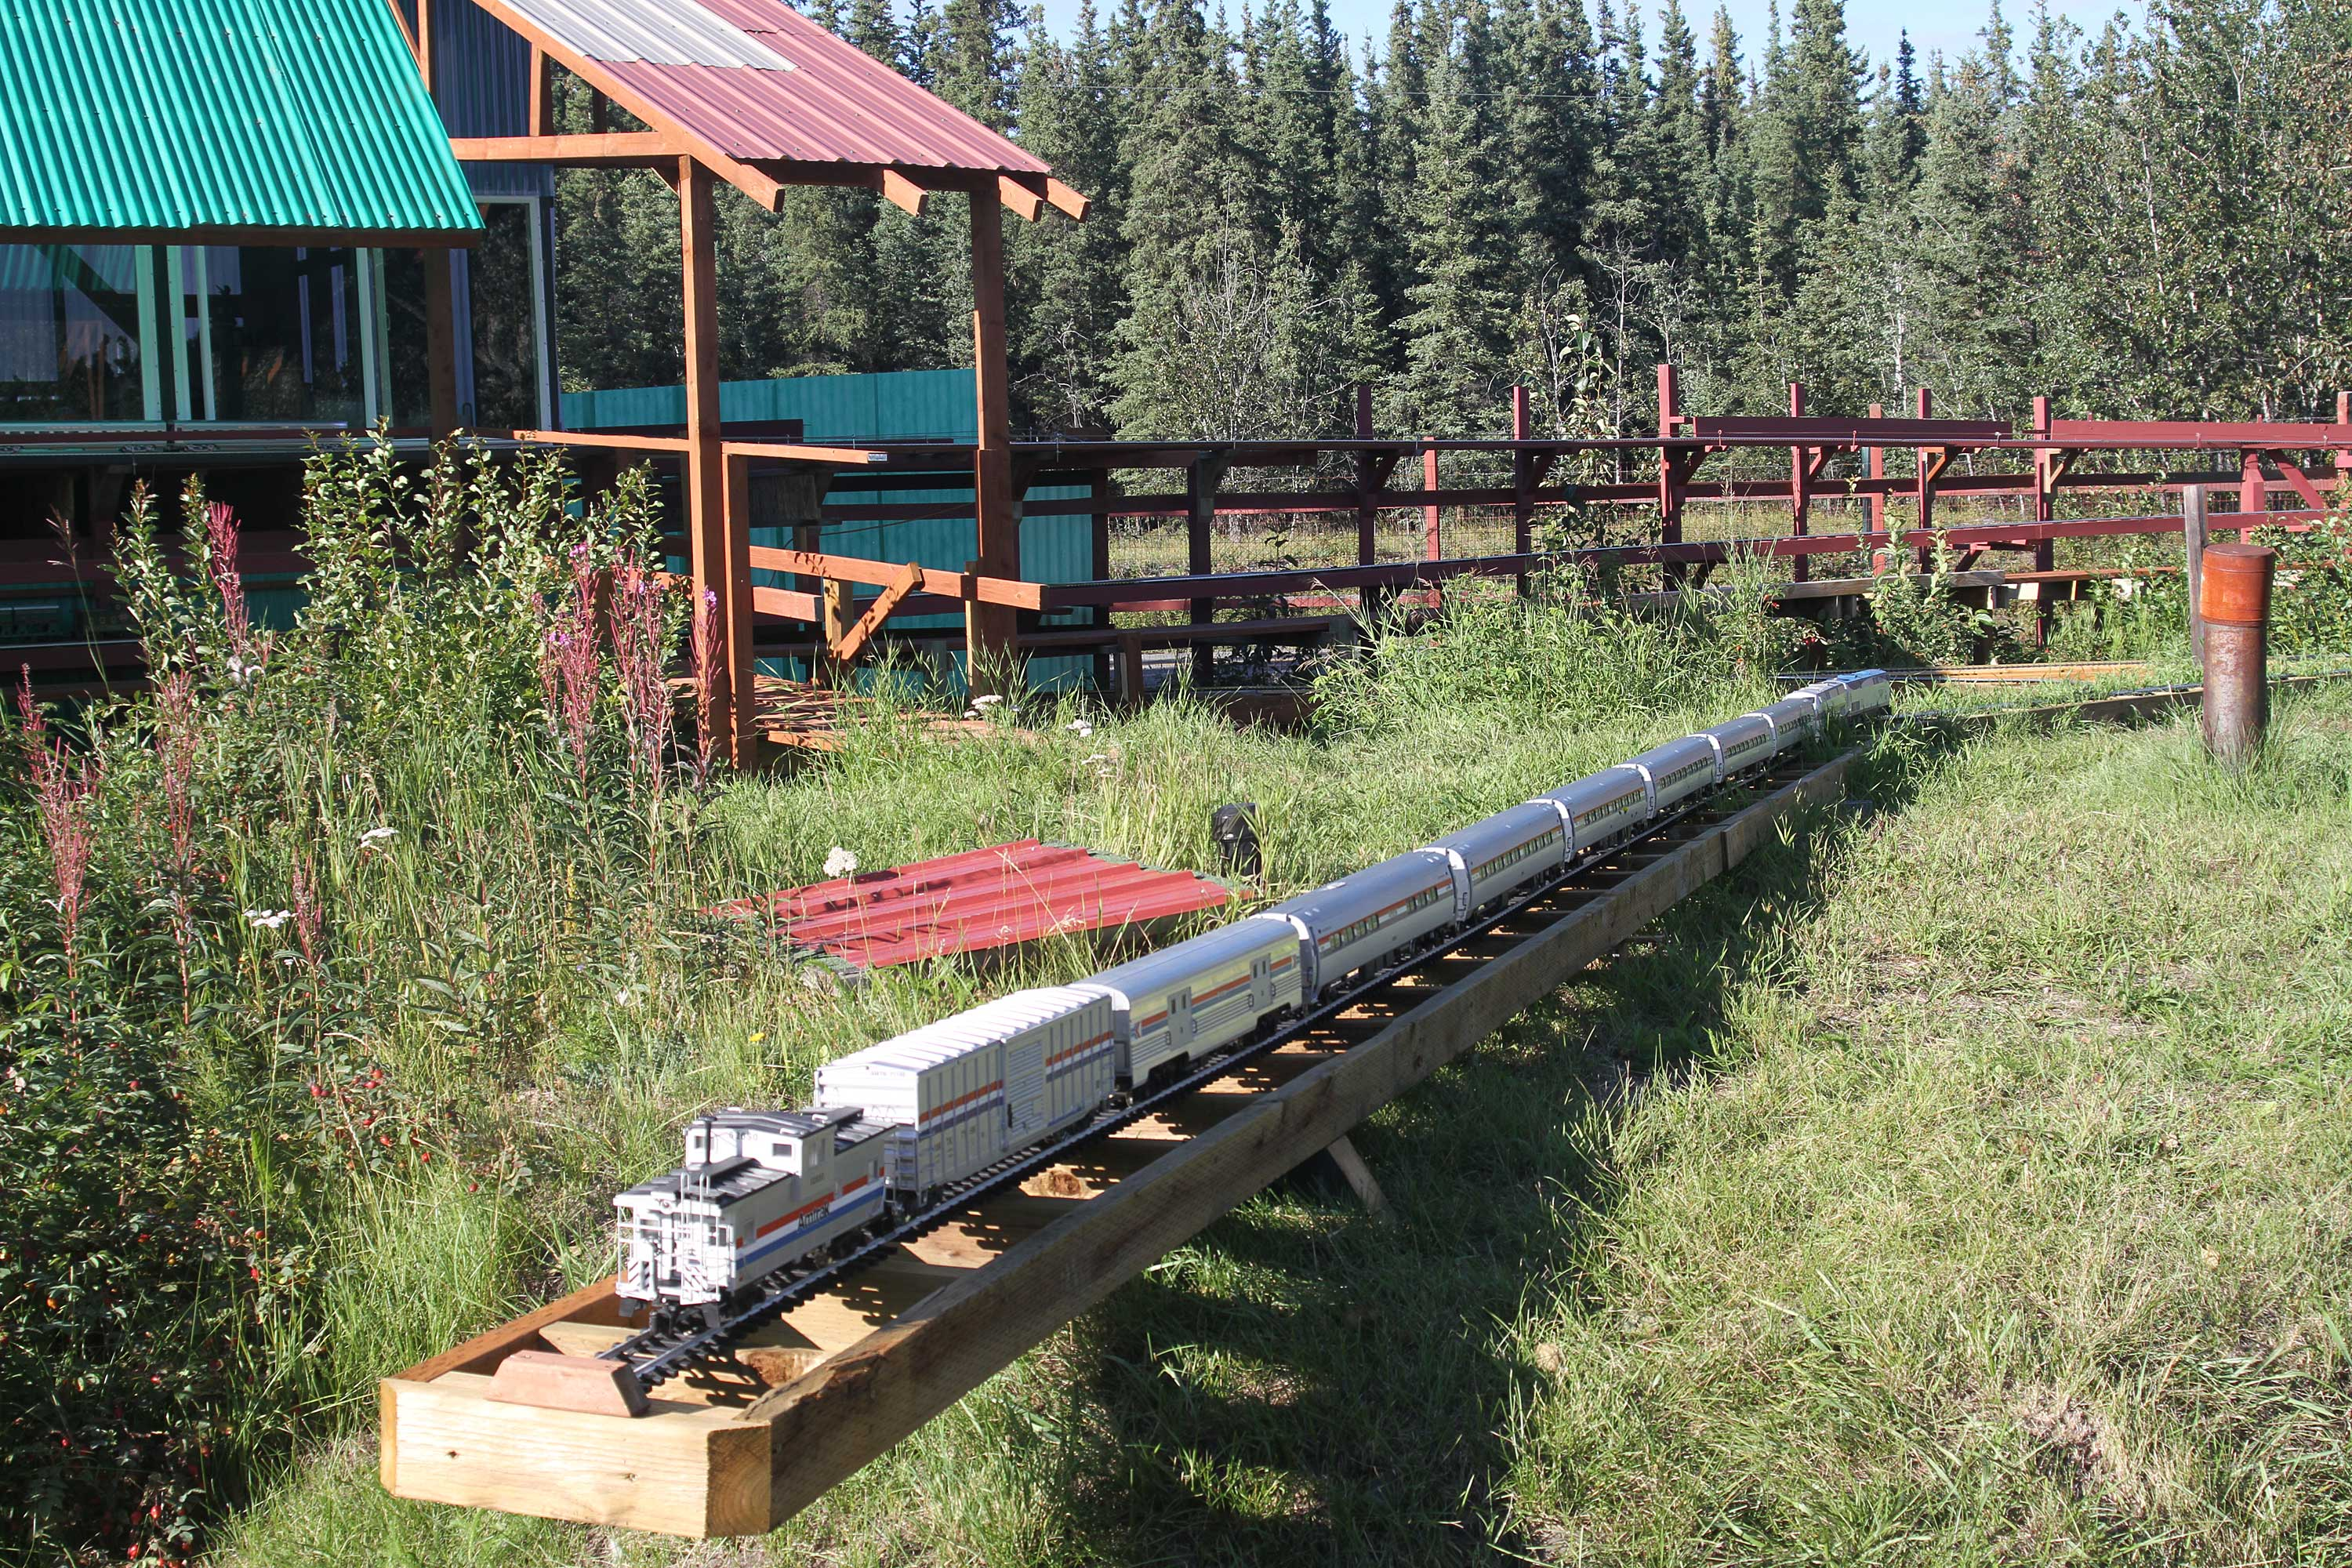 sleetmute dating Photos and property details for 46516 bufflehead loop, kenai, ak 99611 get complete property information, maps, street view,  lifetime arch singles outside.